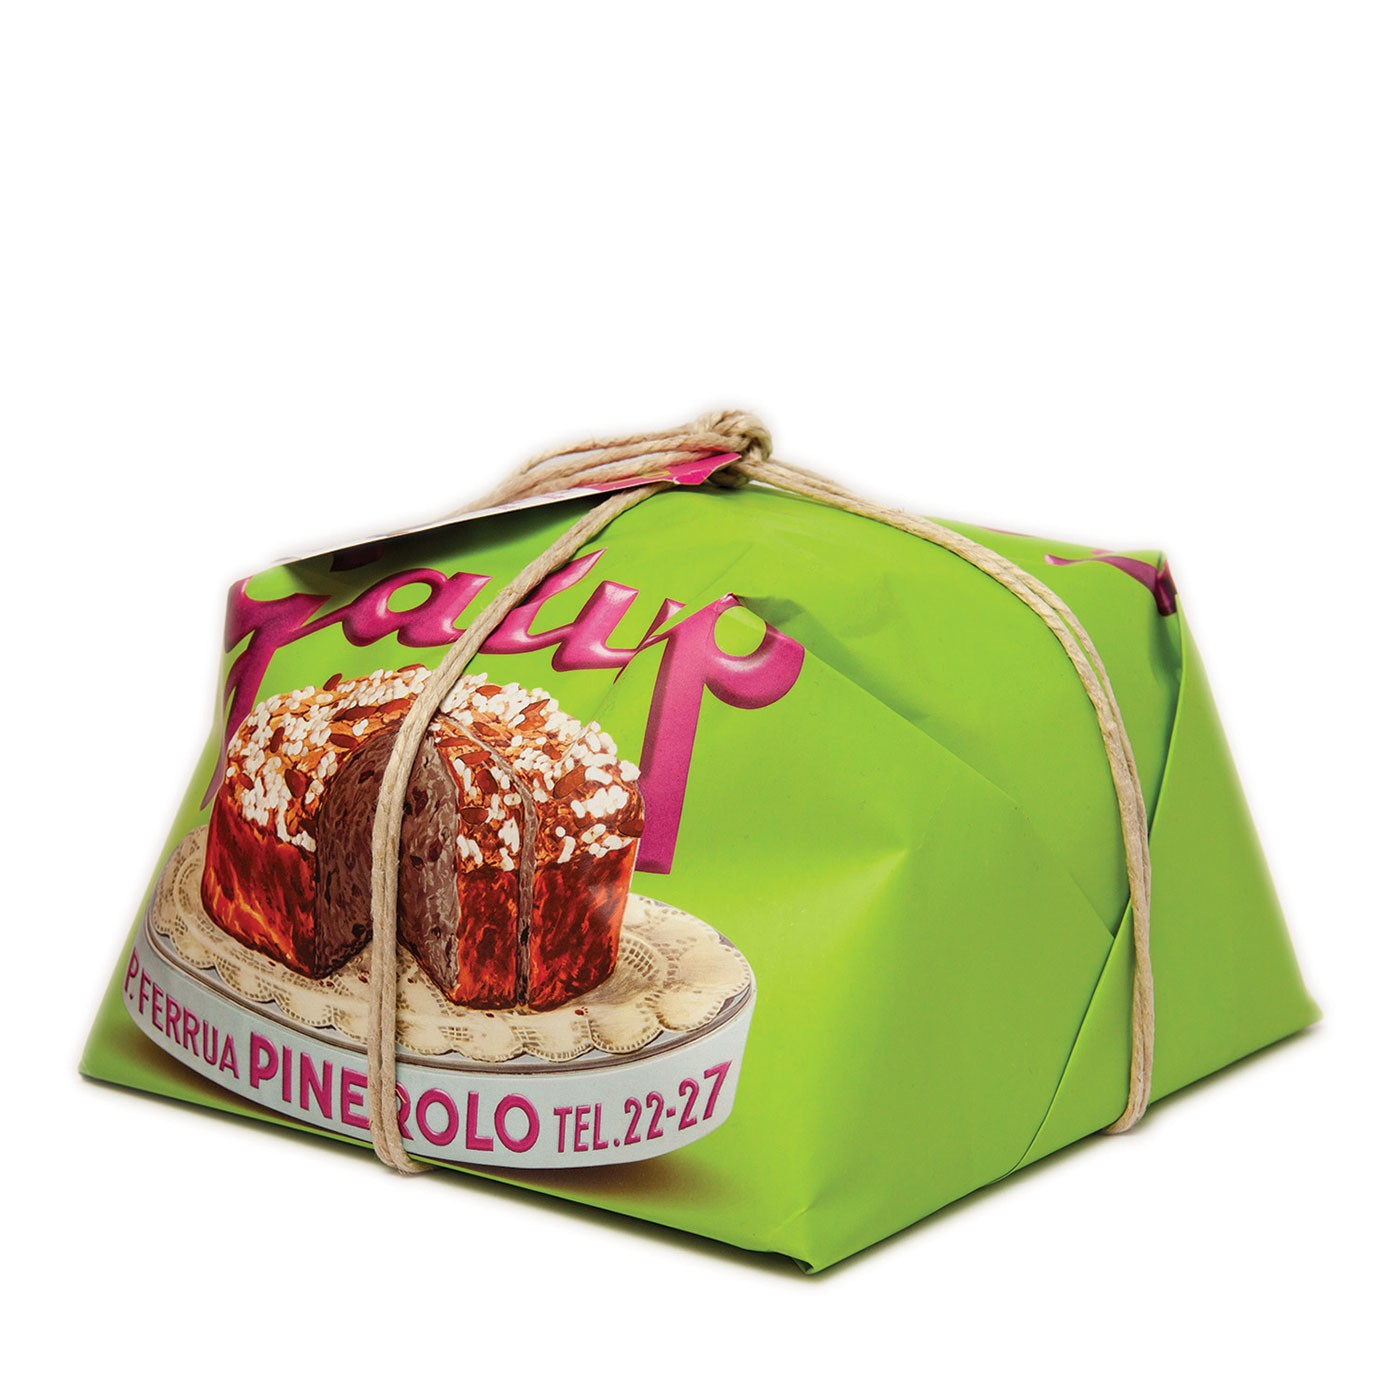 Pear and Chocolate Panettone 26.4 oz